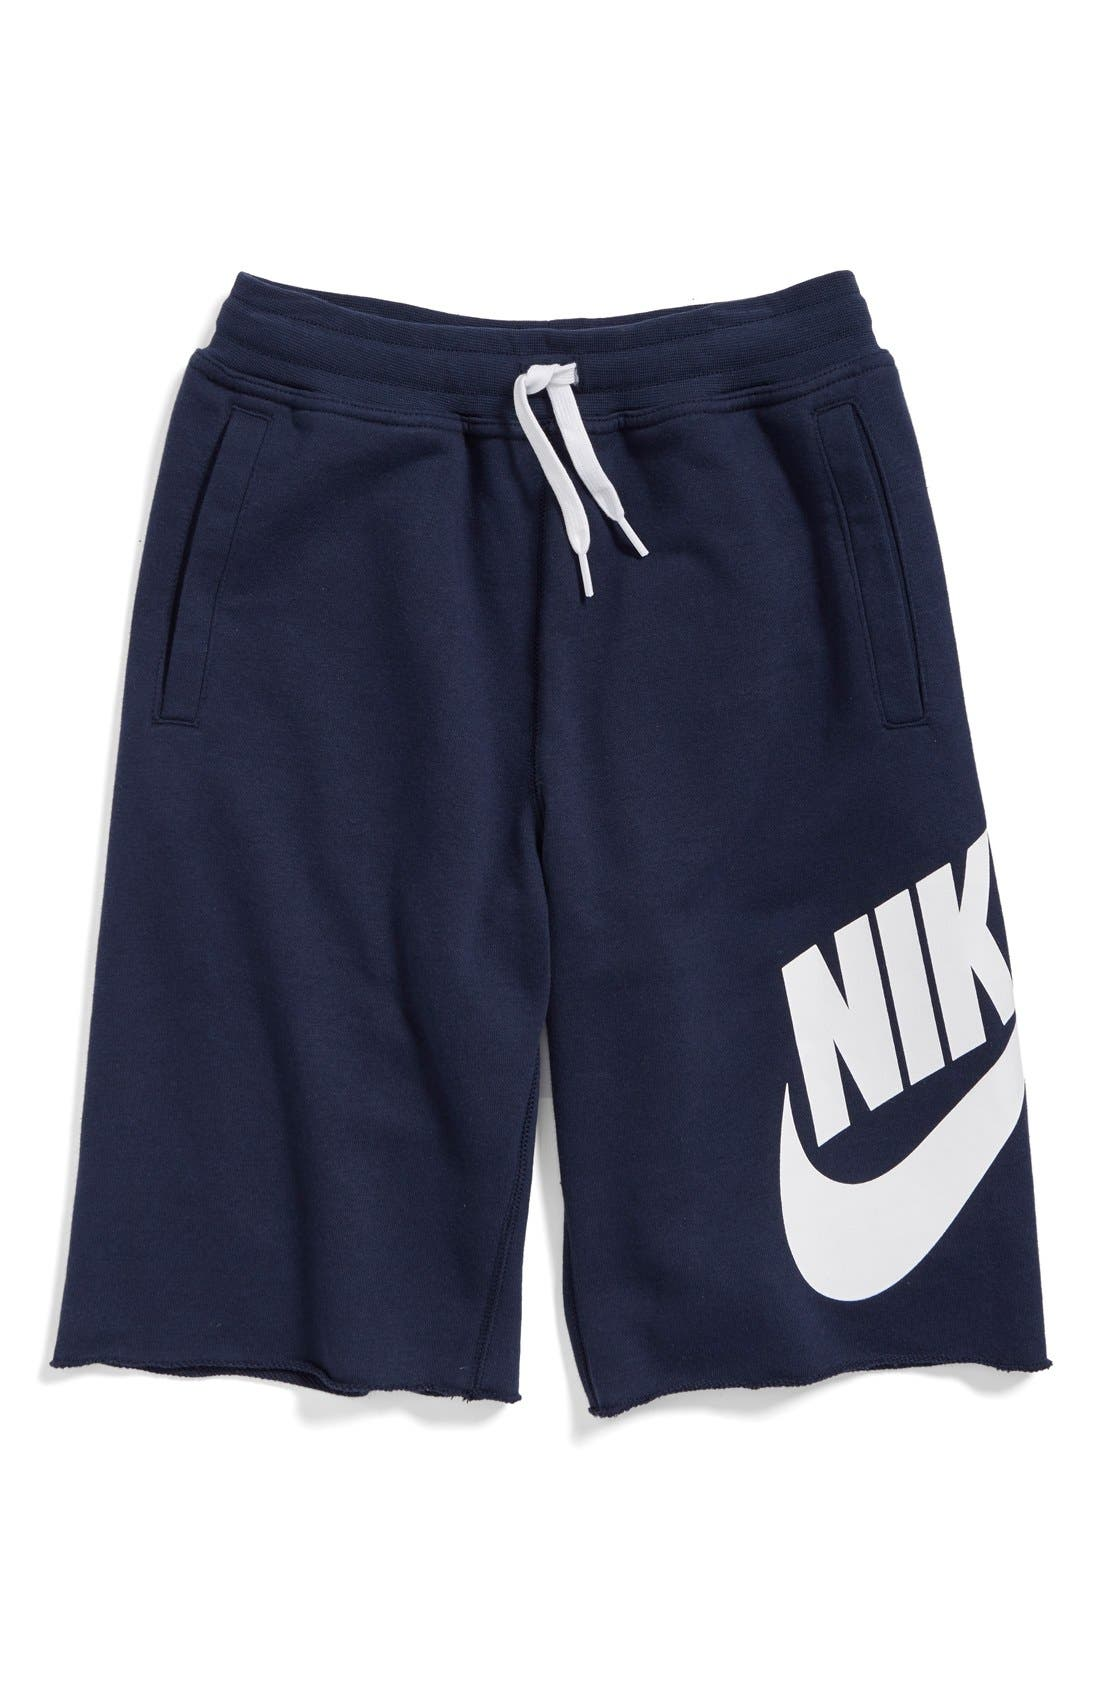 'Alumni' French Terry Knit Shorts,                             Alternate thumbnail 3, color,                             451